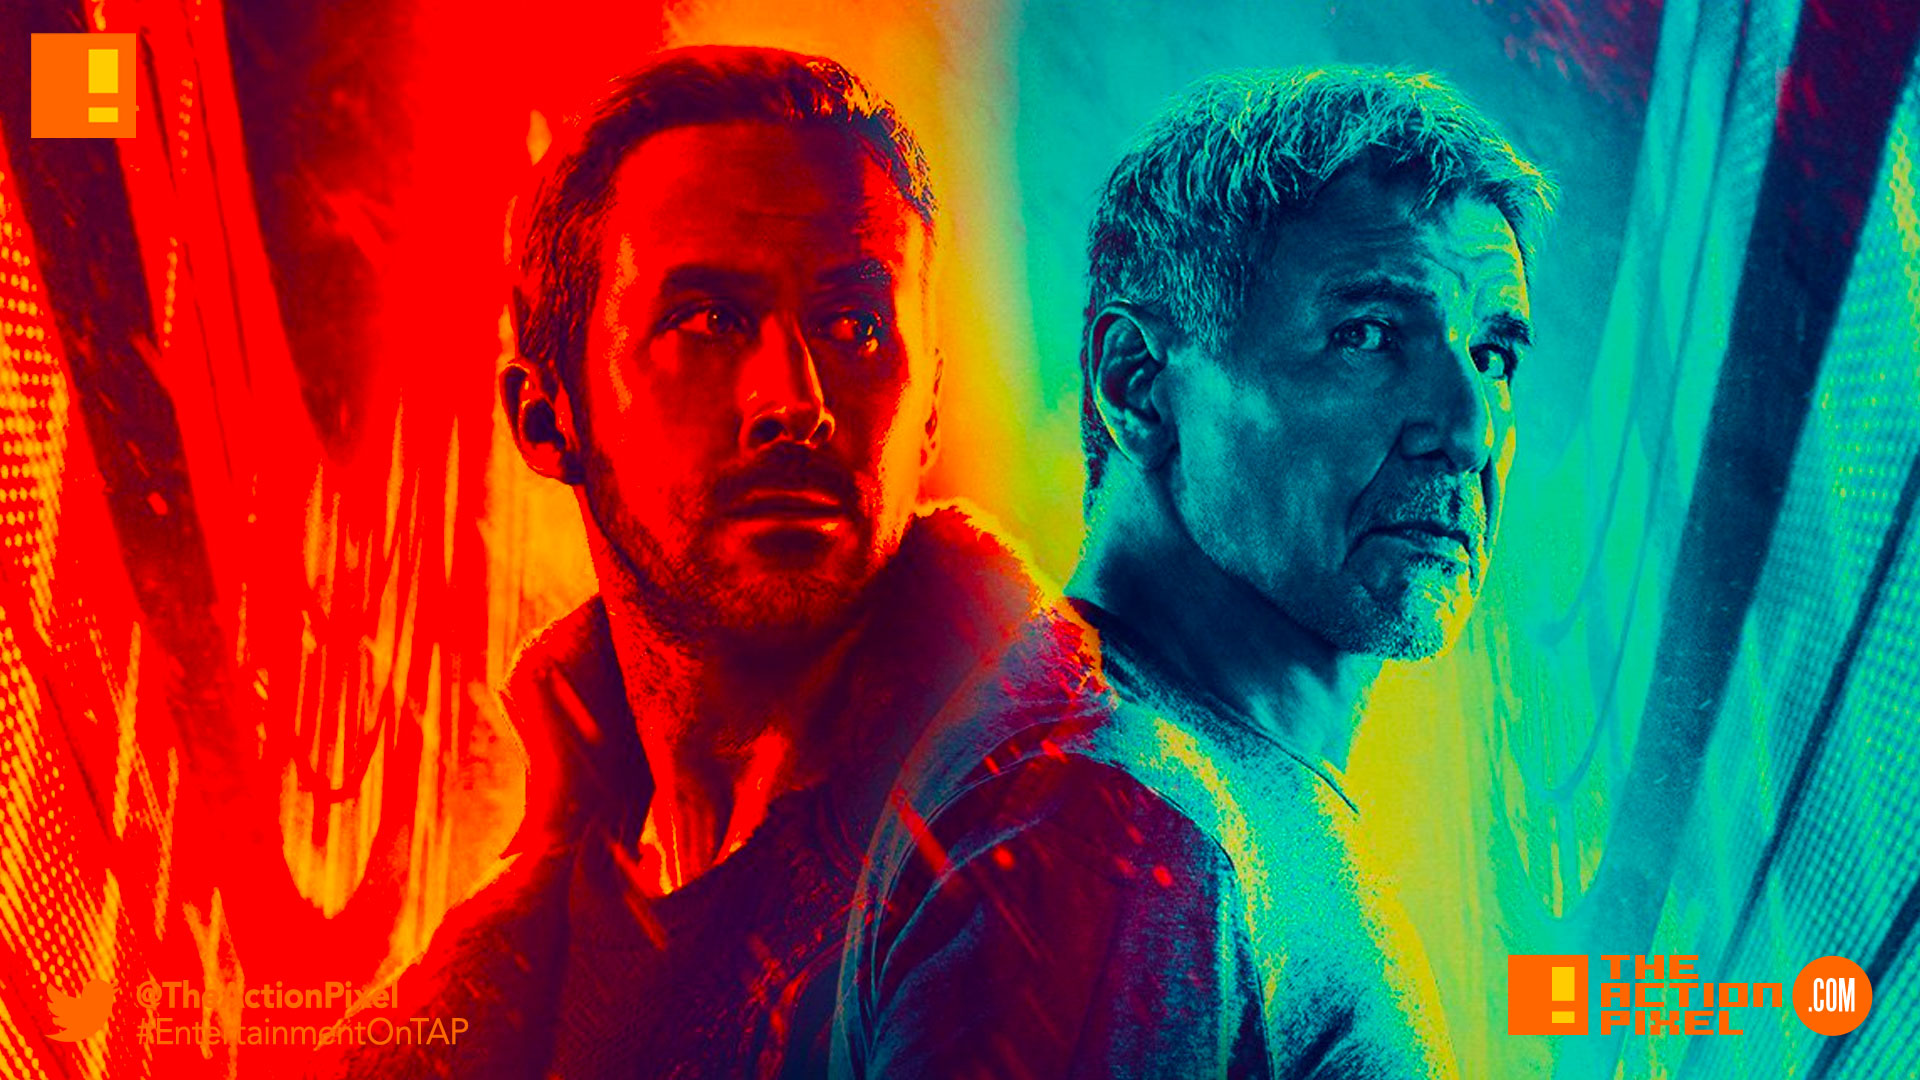 imax, blade runner 2049, ryan gosling, harrison ford, trailer, sony, columbia, icon, warner bros. entertainment , the action pixel, entertainment on tap, rick deckard,blade runner,poster, teaser, warner bros, columbia,ridley scott